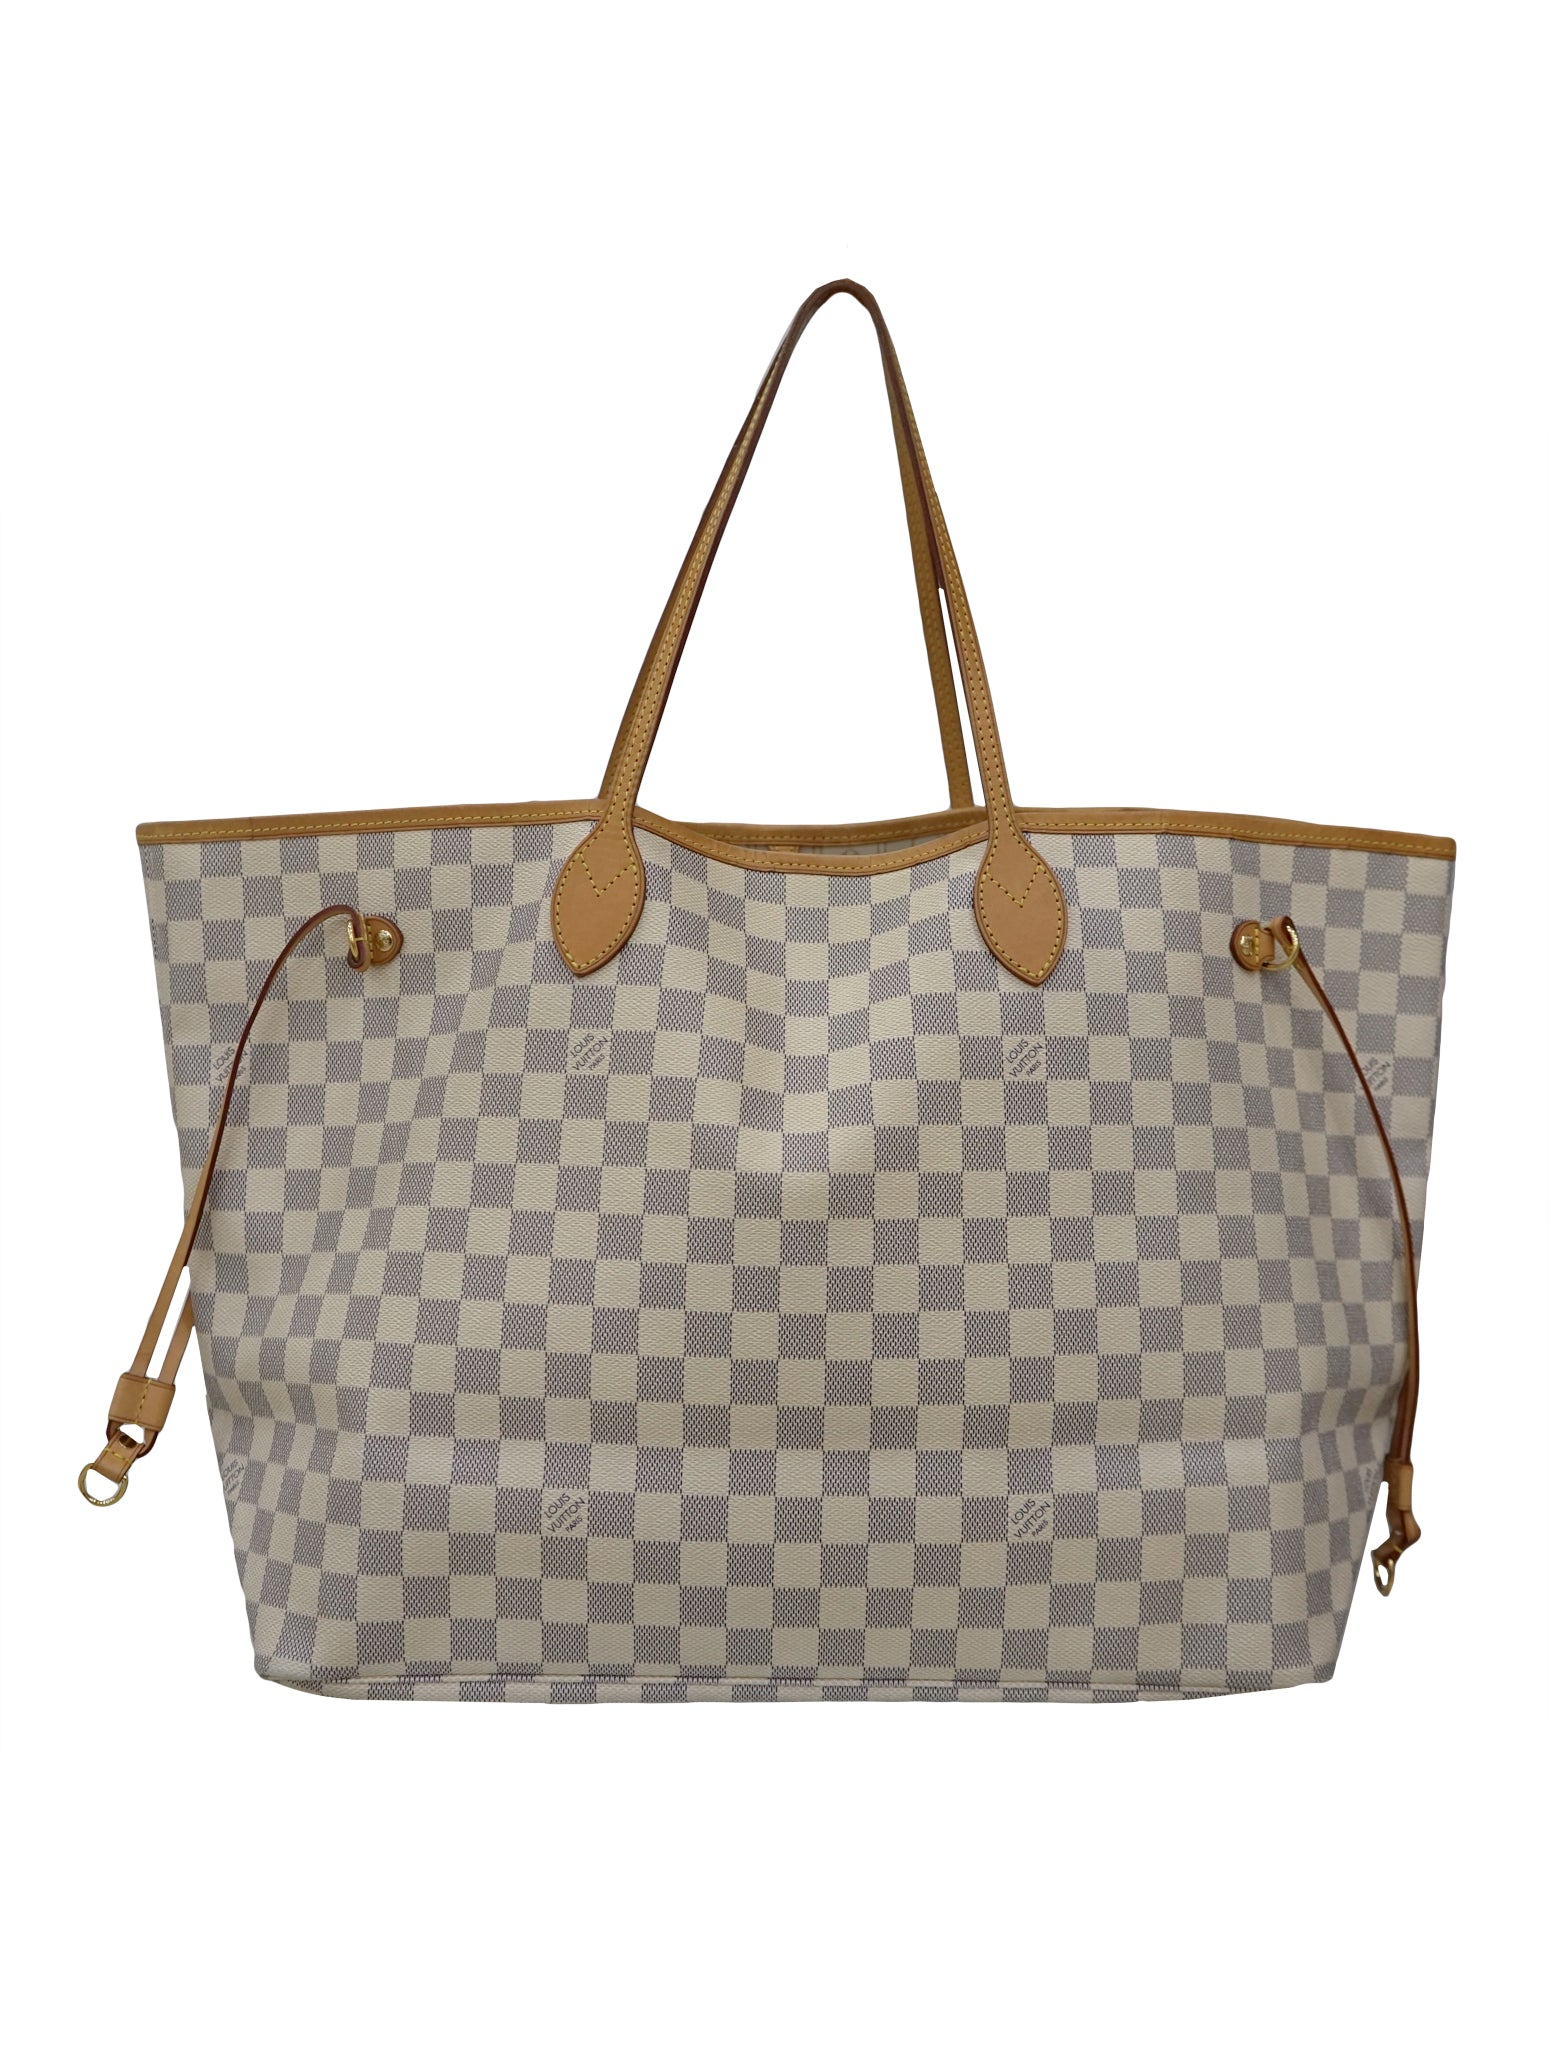 LOUIS VUITTON DAMIER AZUR CANVAS NEVERFULL GM BAG – Kidsstyleforless 0fe05ec997f5a